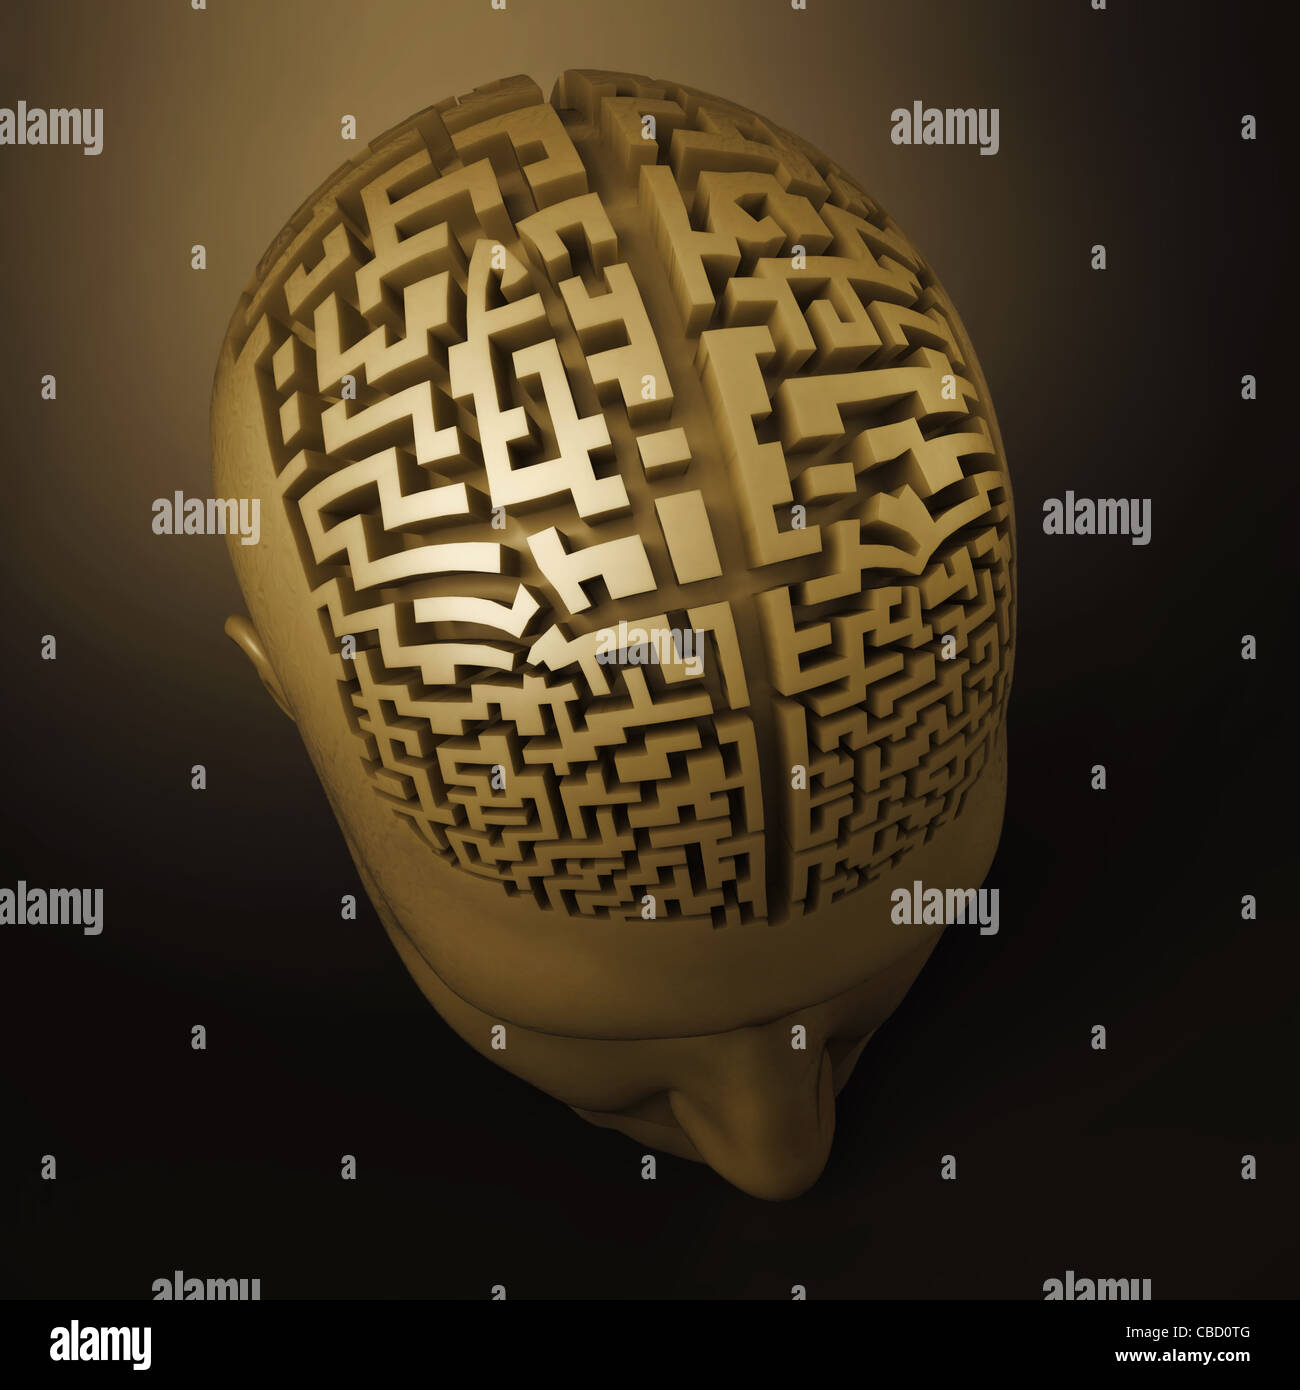 labyrinth in the human brain - Stock Image